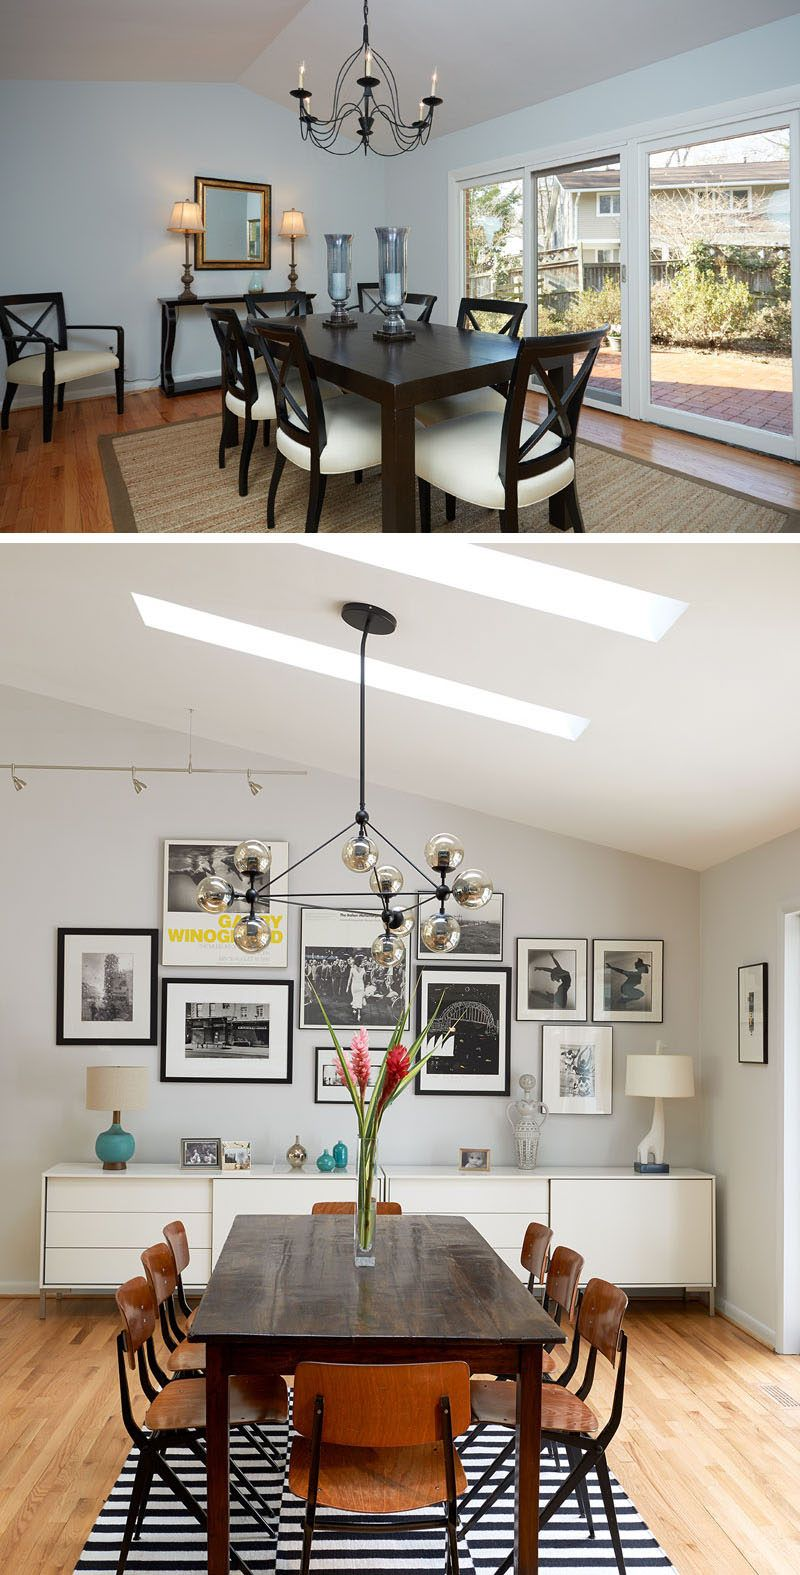 BEFORE & AFTER - In this updated dining room, a black and white ...